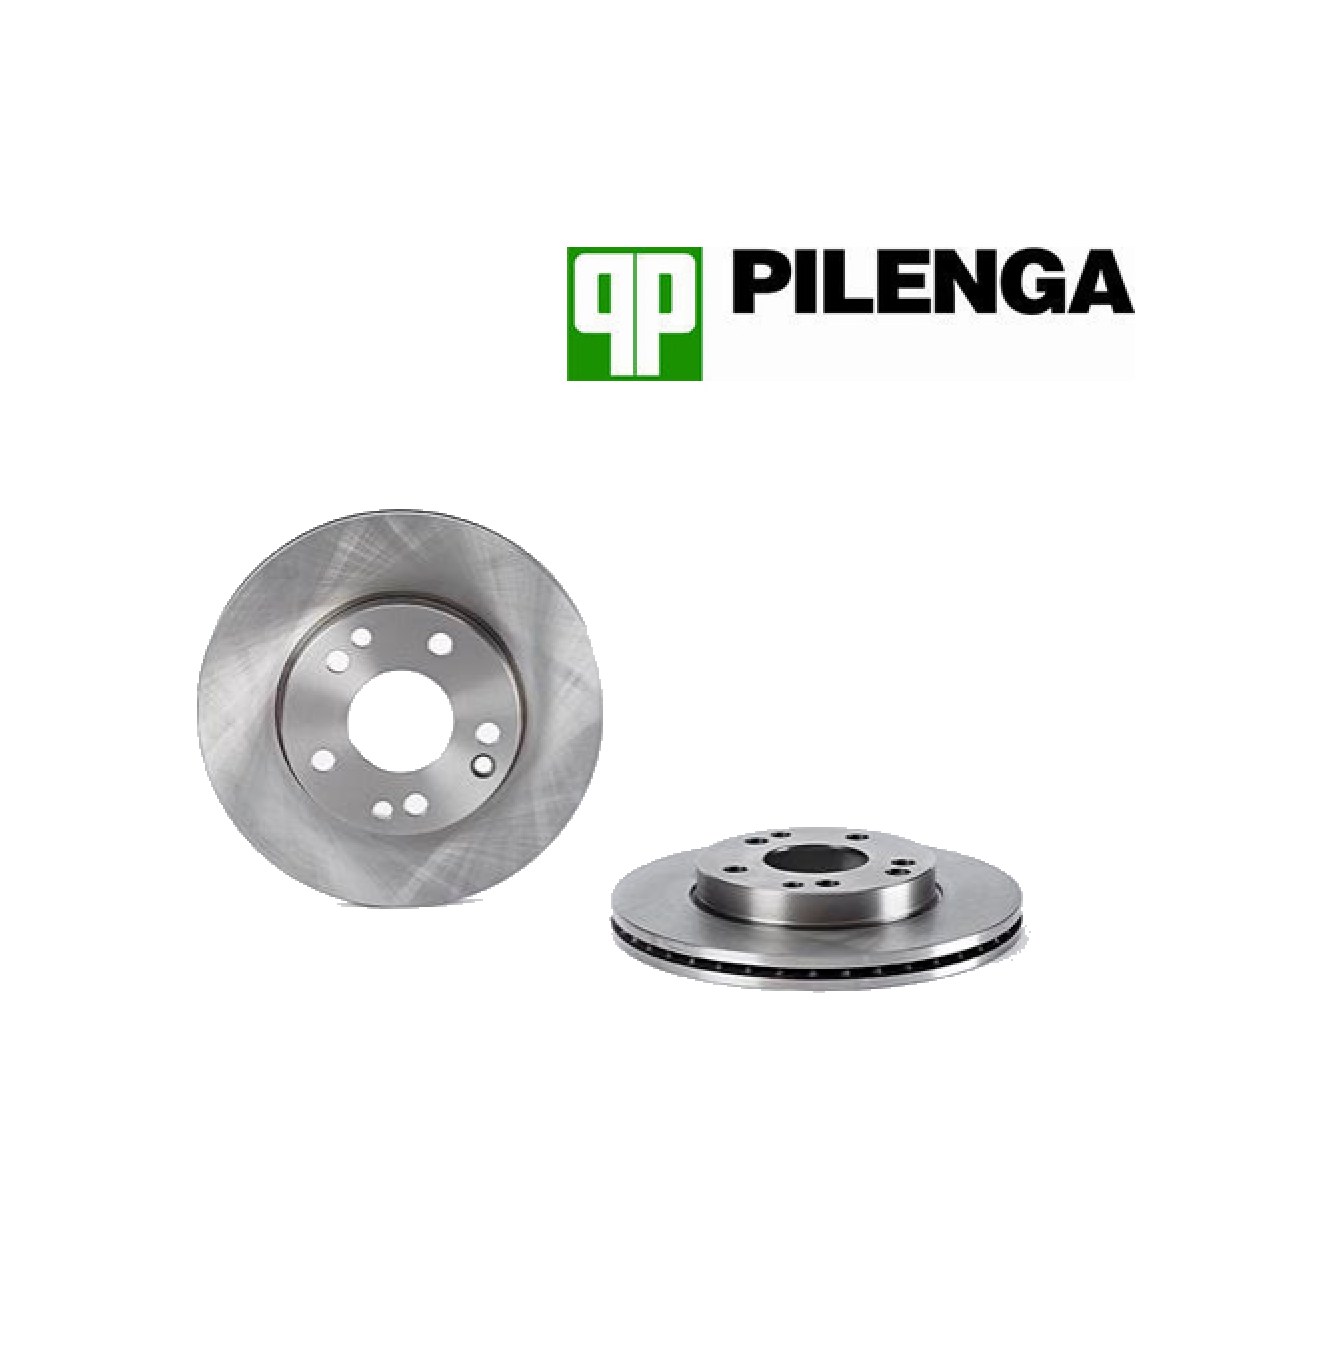 PAIR FRONT BRAKE DISCS MERCEDES BENZ 190 W201 PILENGA FOR A2014211312